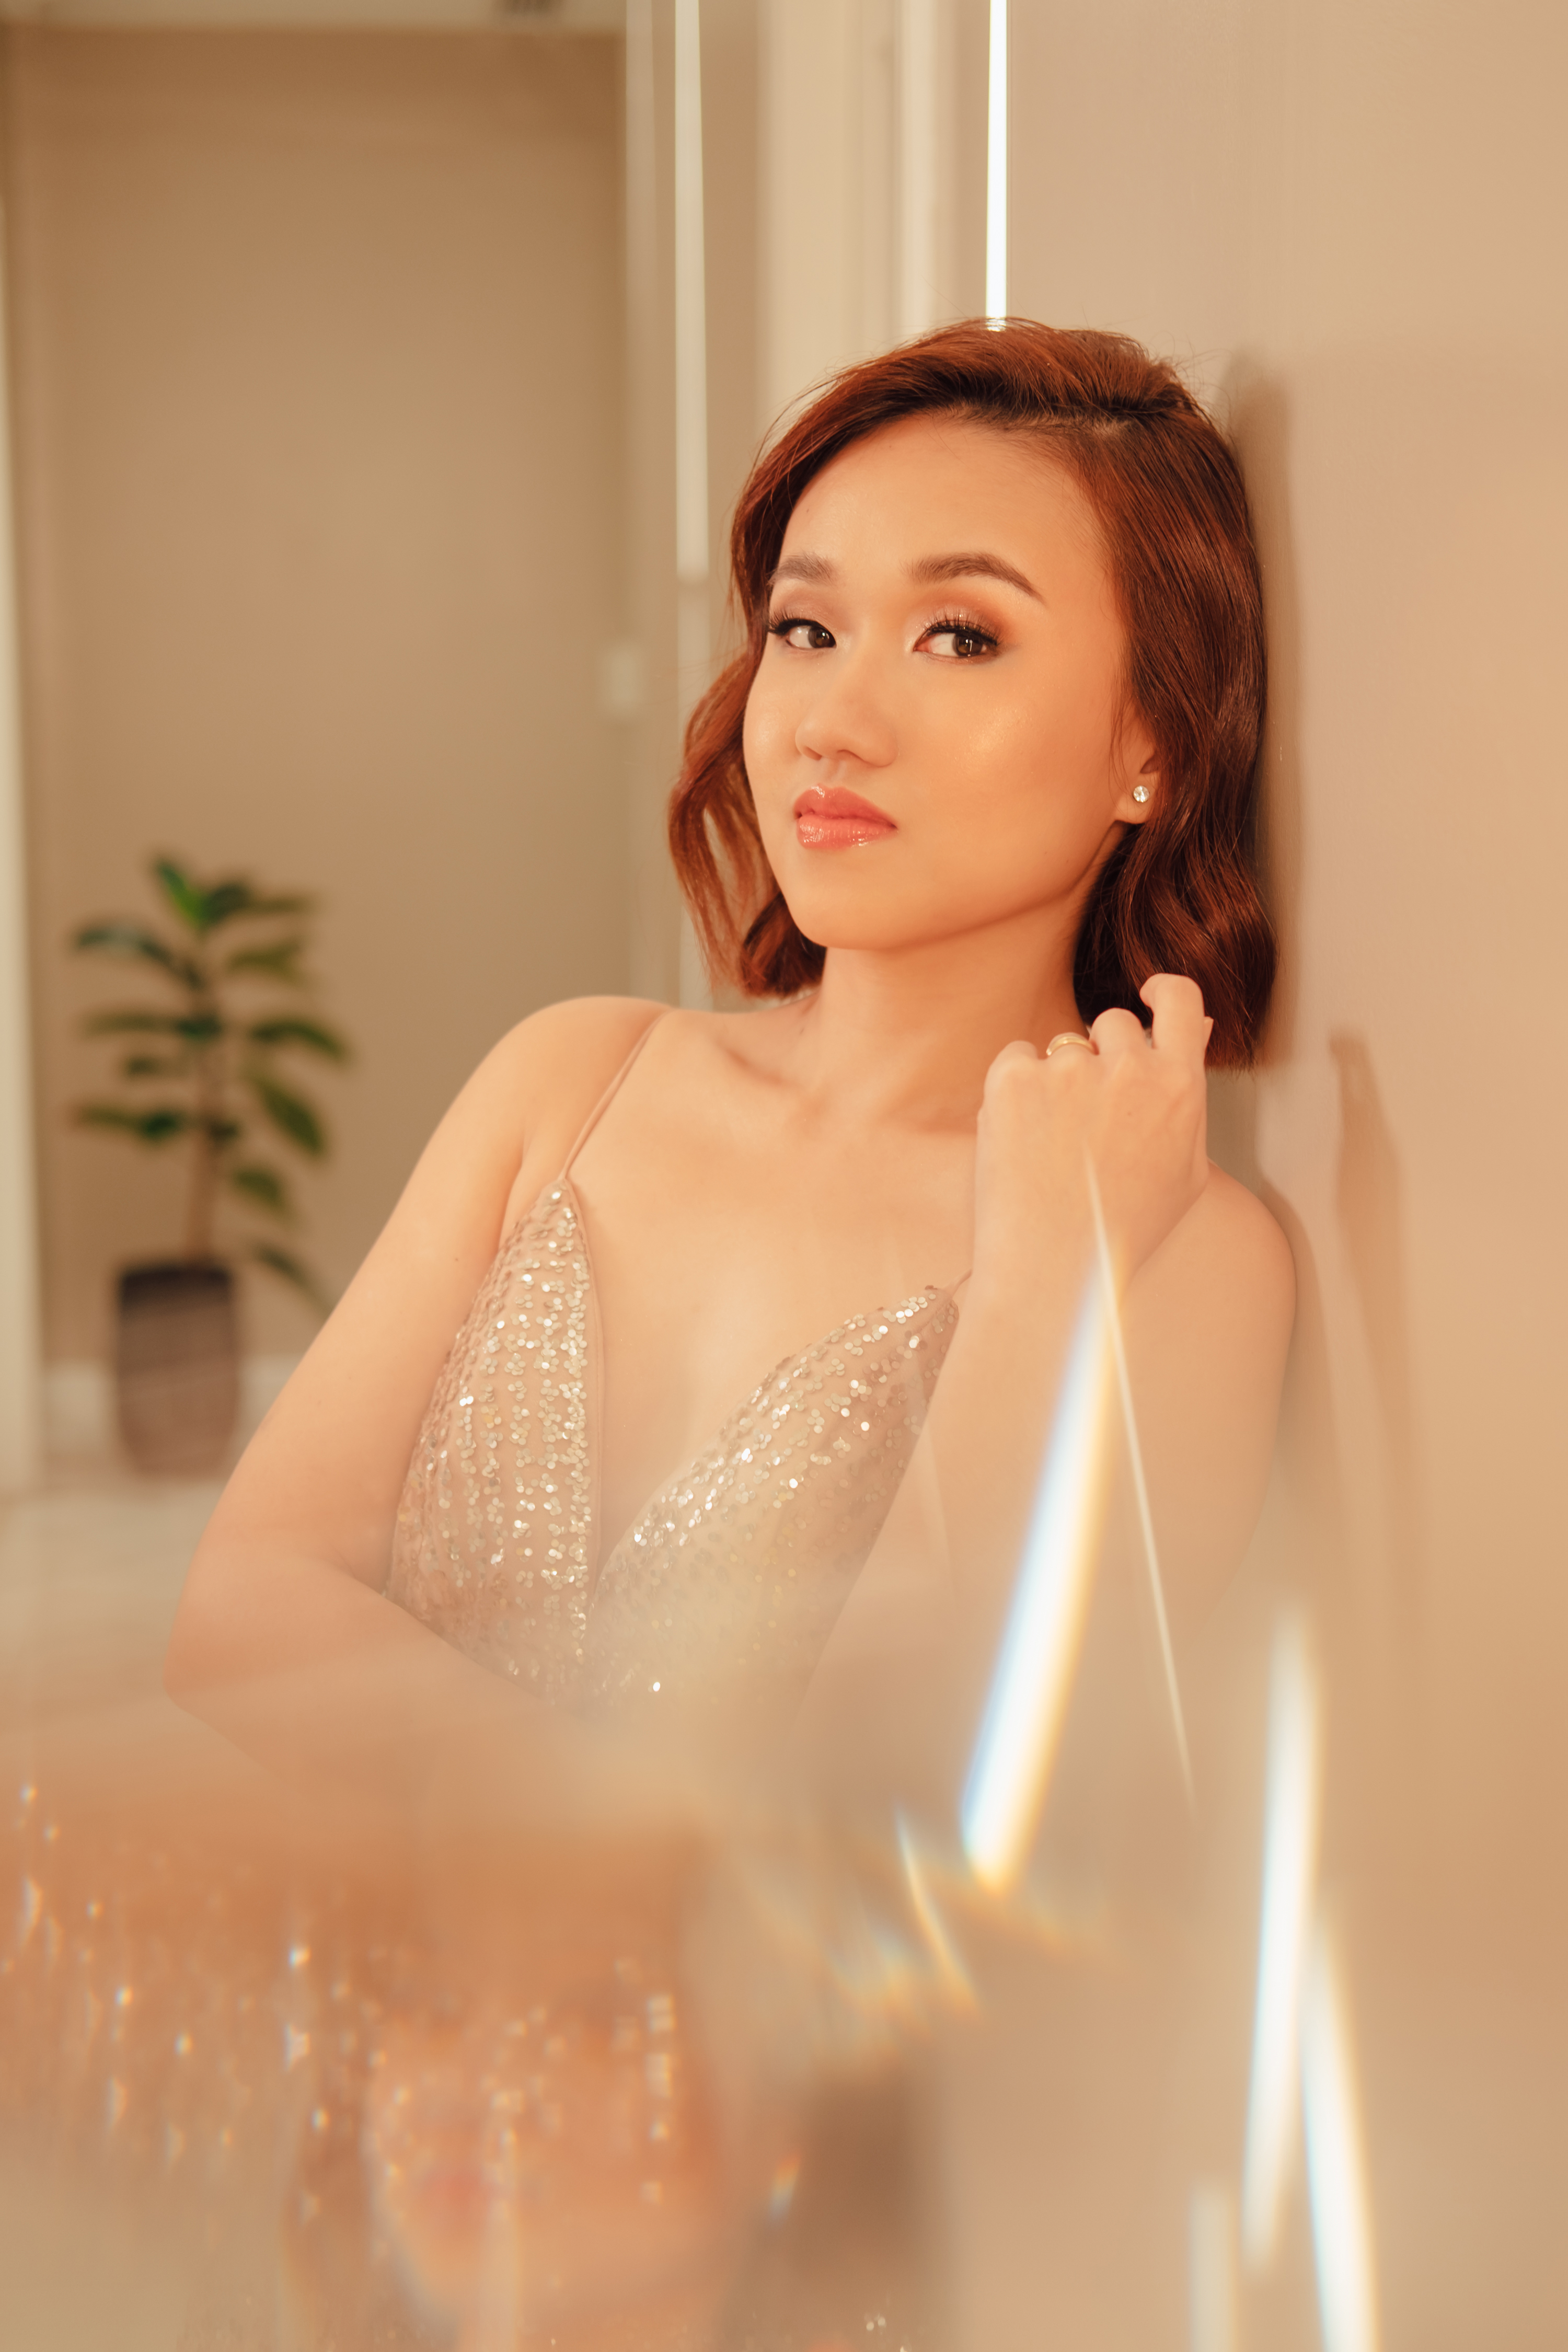 Beauty Drips and Gluta IV Push 1